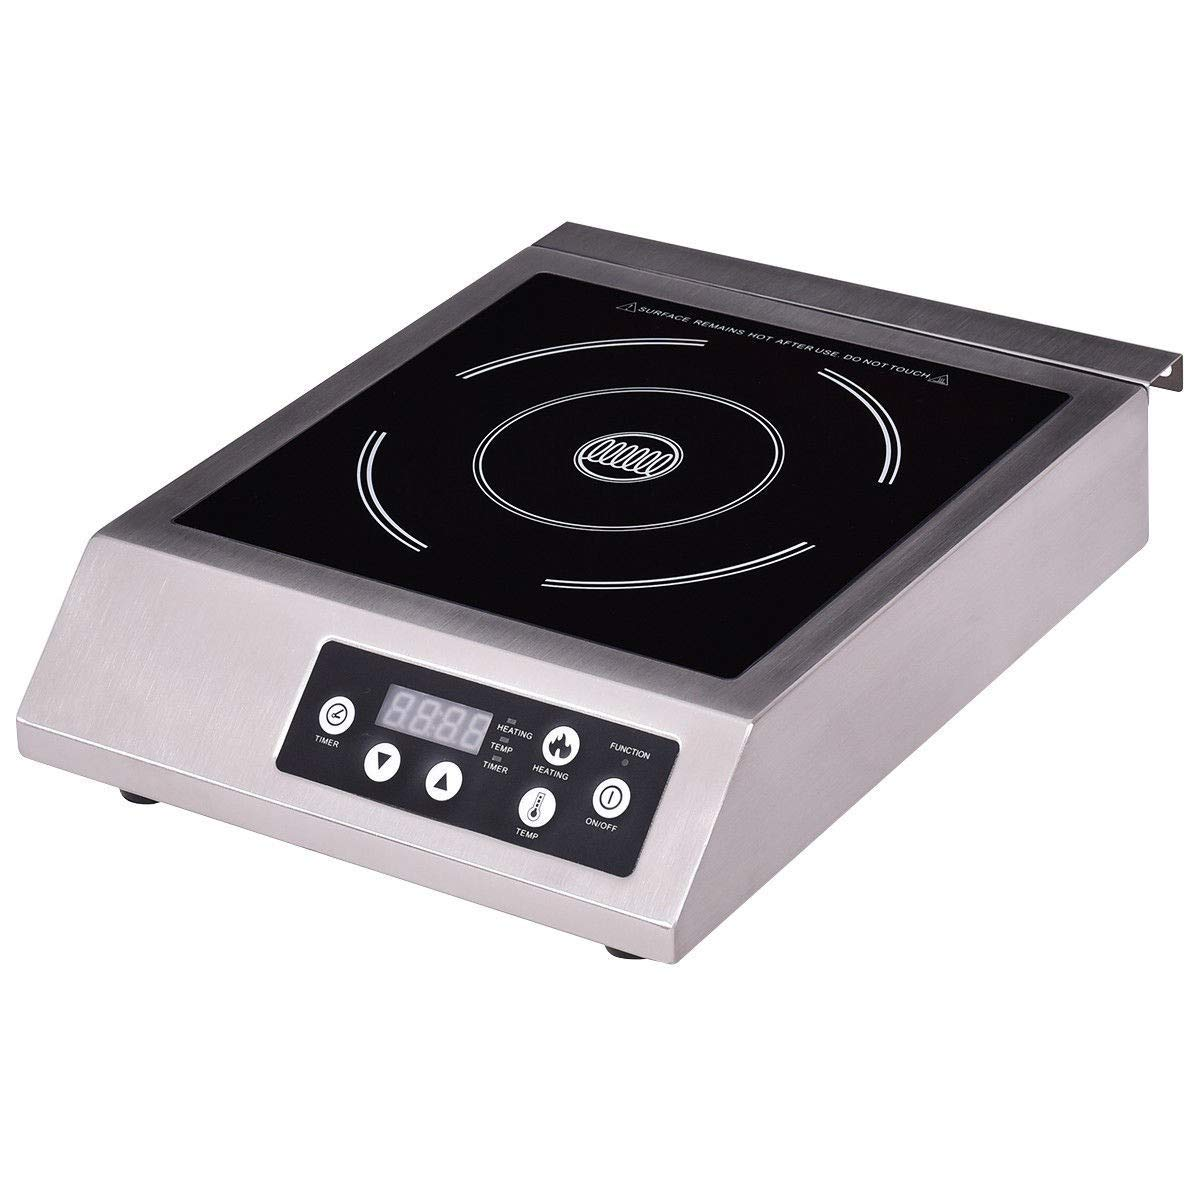 BeUniqueToday 1800 W Metal Single Burner Electric Induction Cooker, Single Burner Electric Induction Cooker With Digital LED Display & Push-Button Control, 1800 W Metal Single Burner Electric Induction Cooker Lightweight And Compact